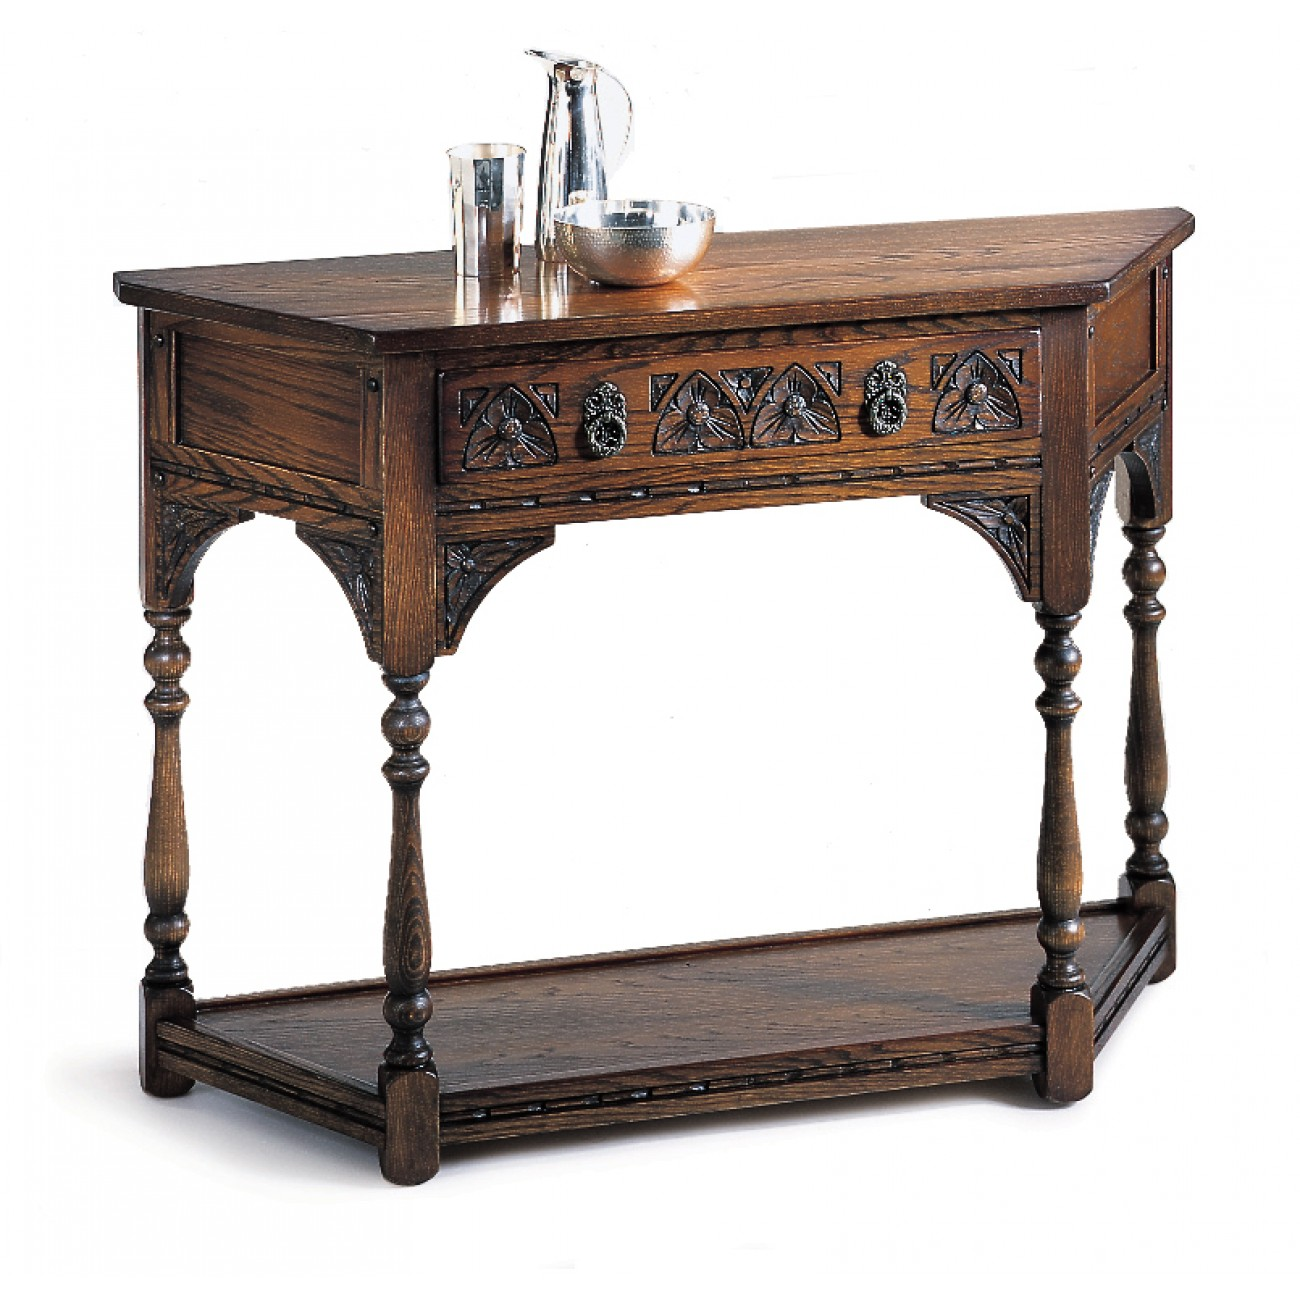 old charm furniture old charm occasional furniture 2379 canted console table u003cpu003eu003cspan style- HCFXJZR